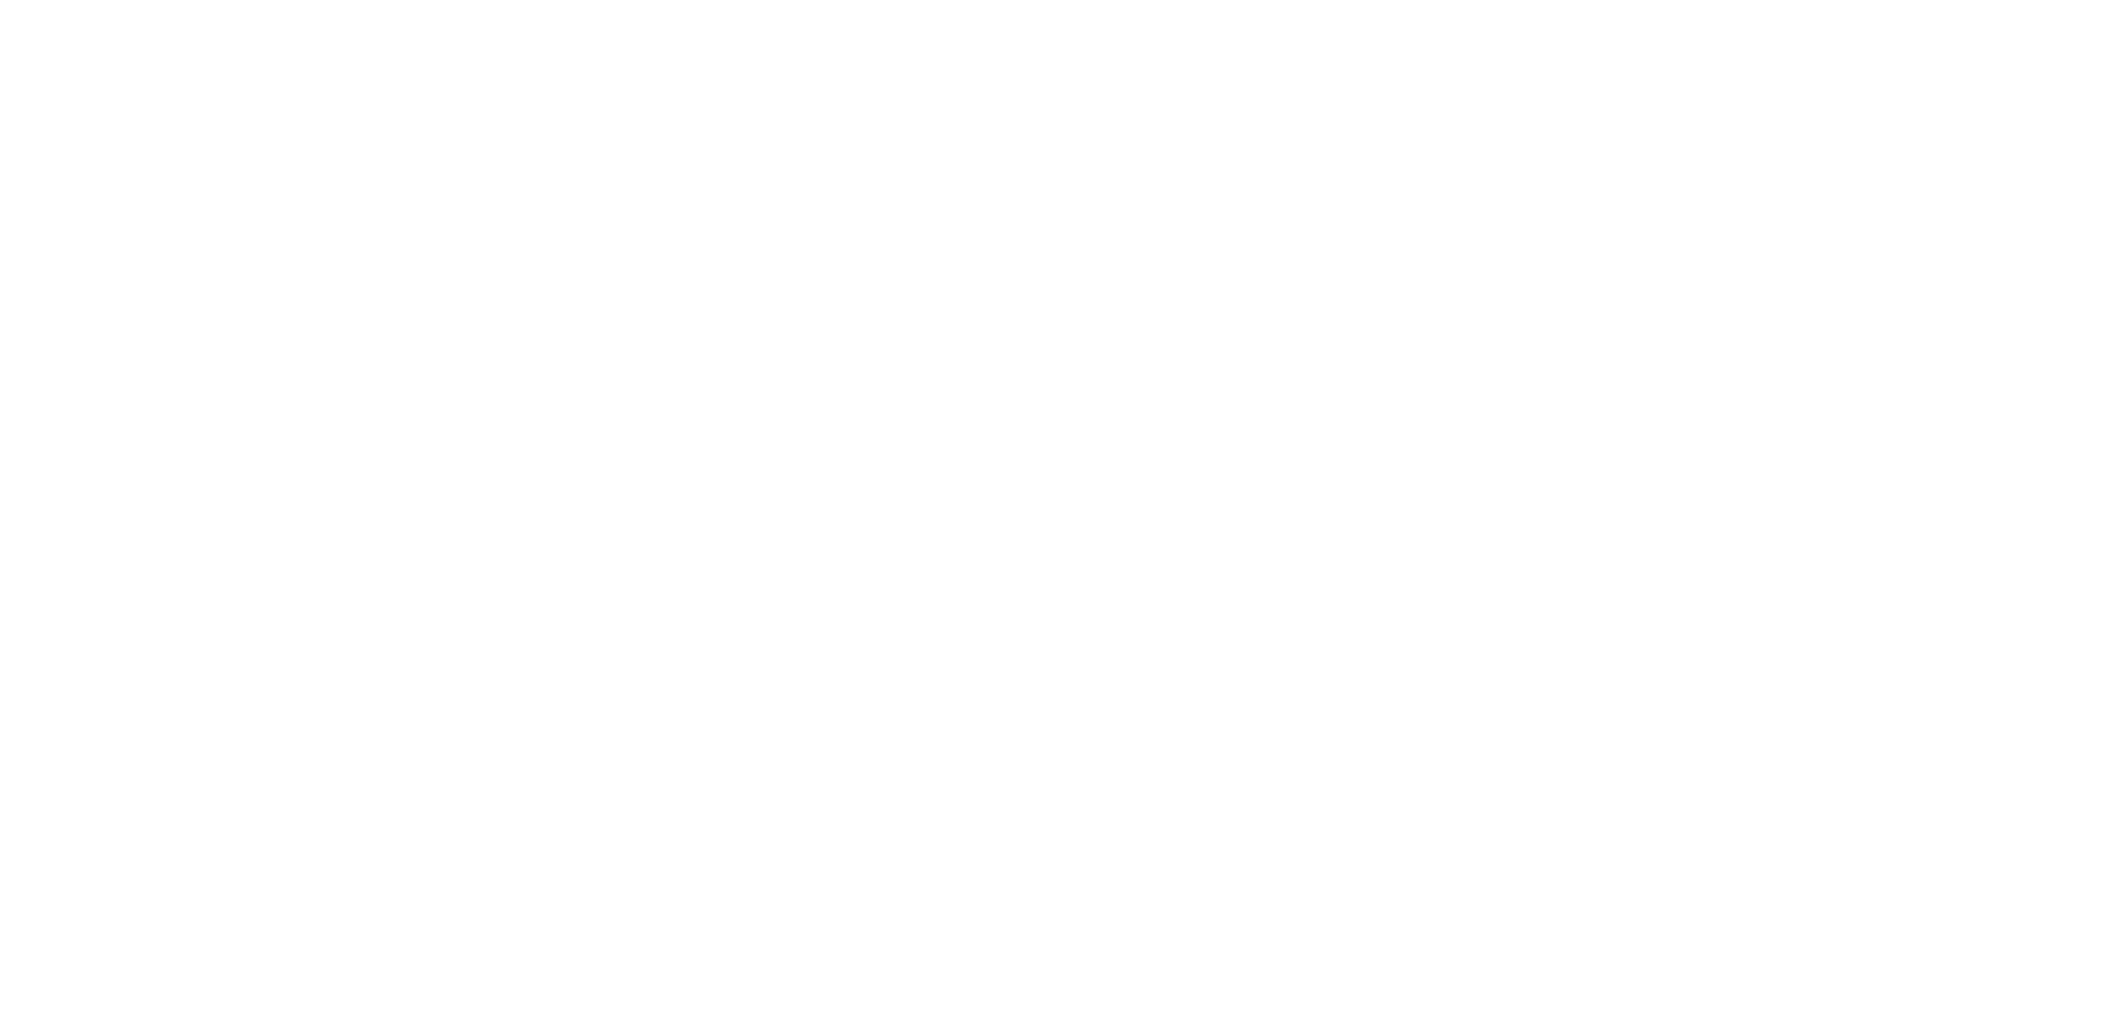 D.C. Chapter of the Surfrider Foundation